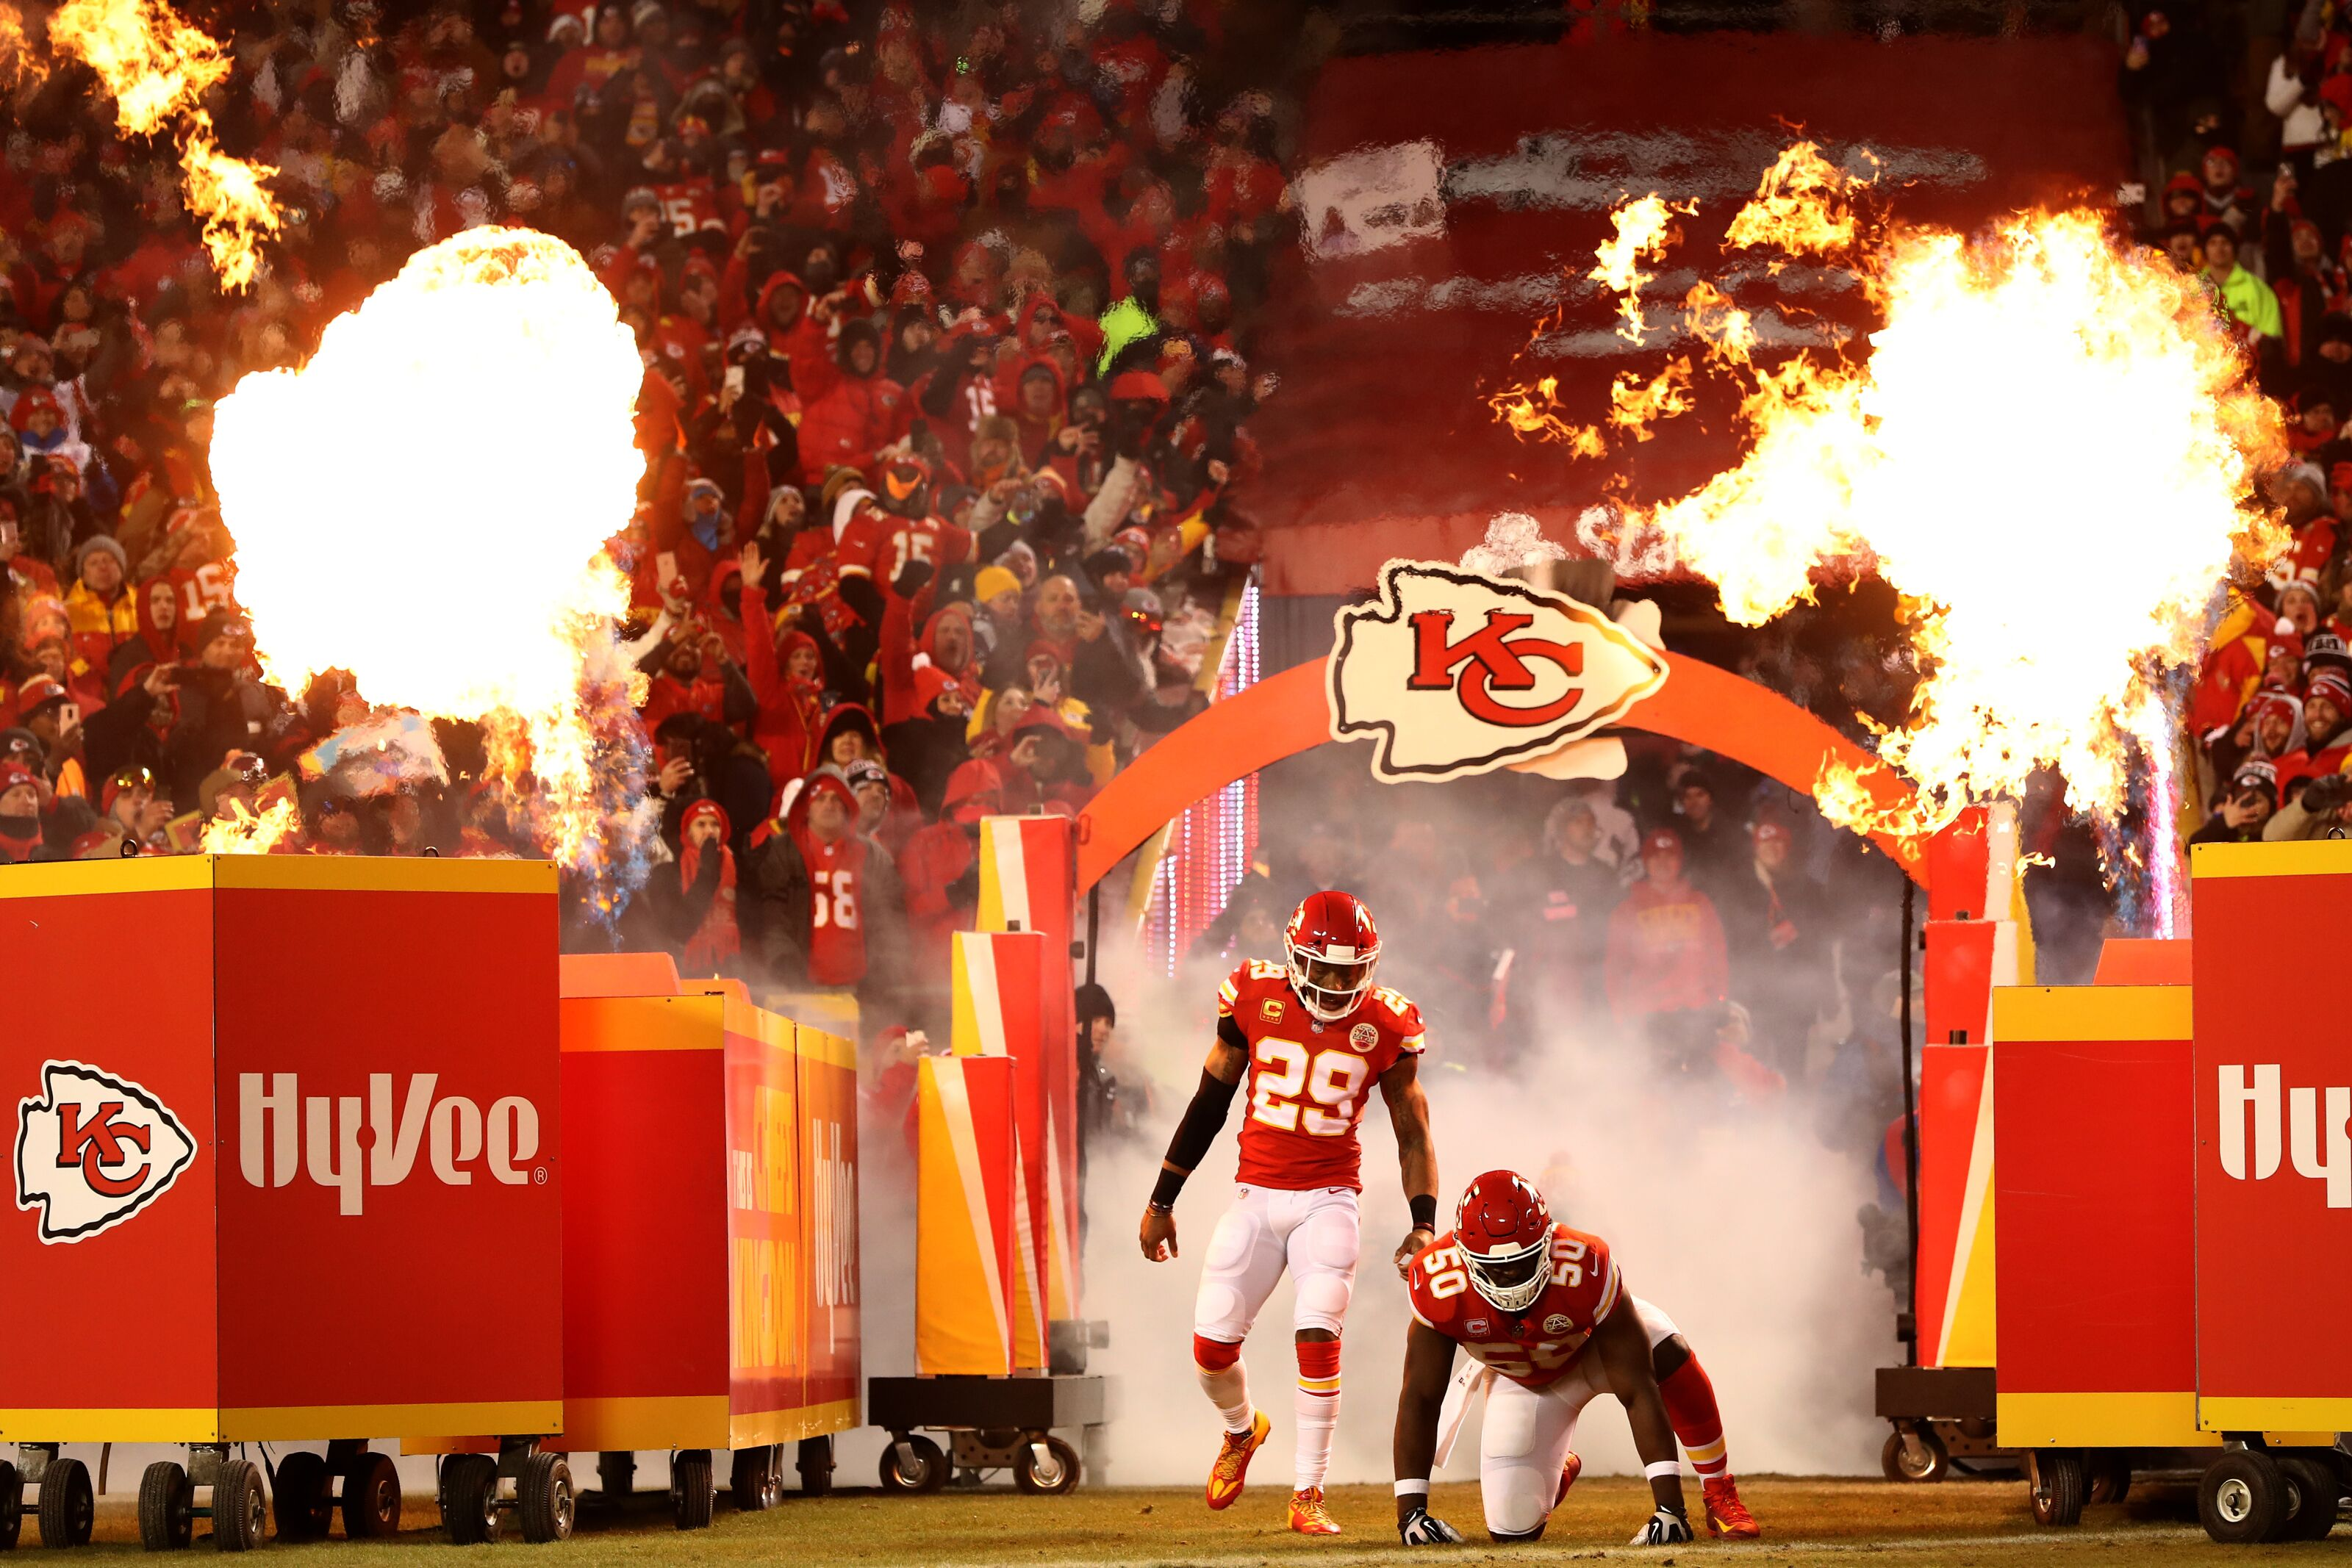 Justin Houston says he's ready to prove doubters wrong with Colts